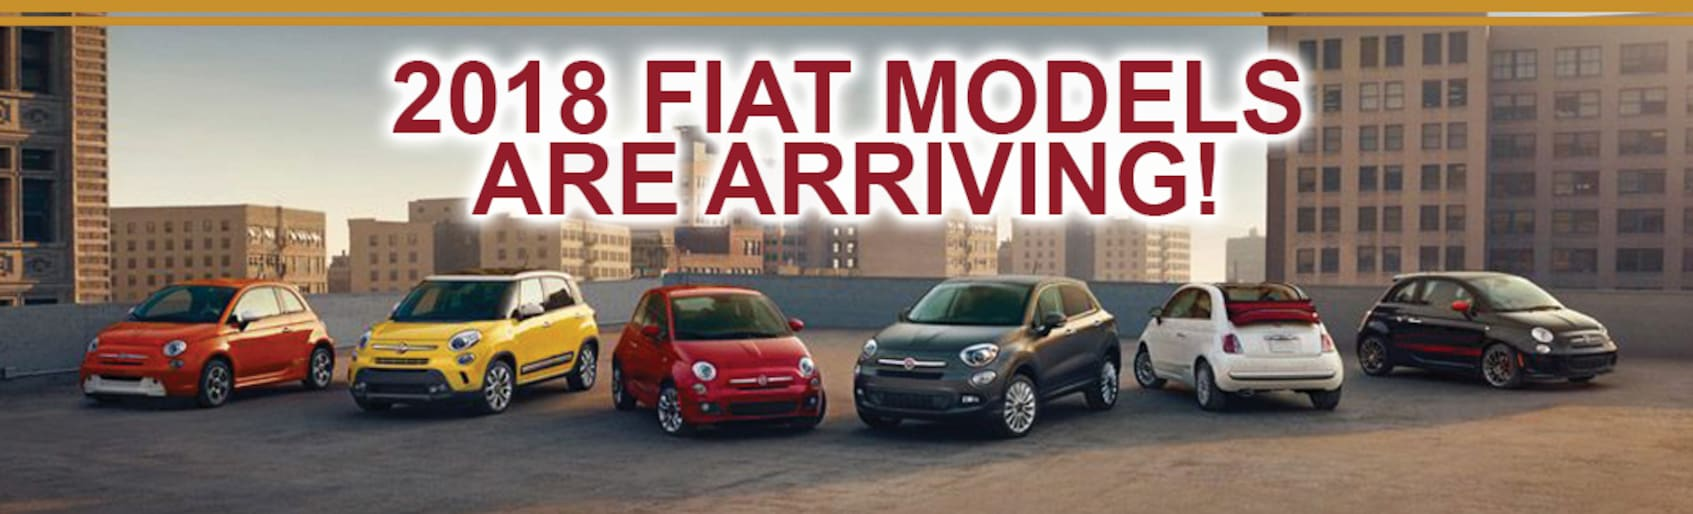 New Used FIAT Dealership In Wesley Chapel FL - Fiat dealers in florida